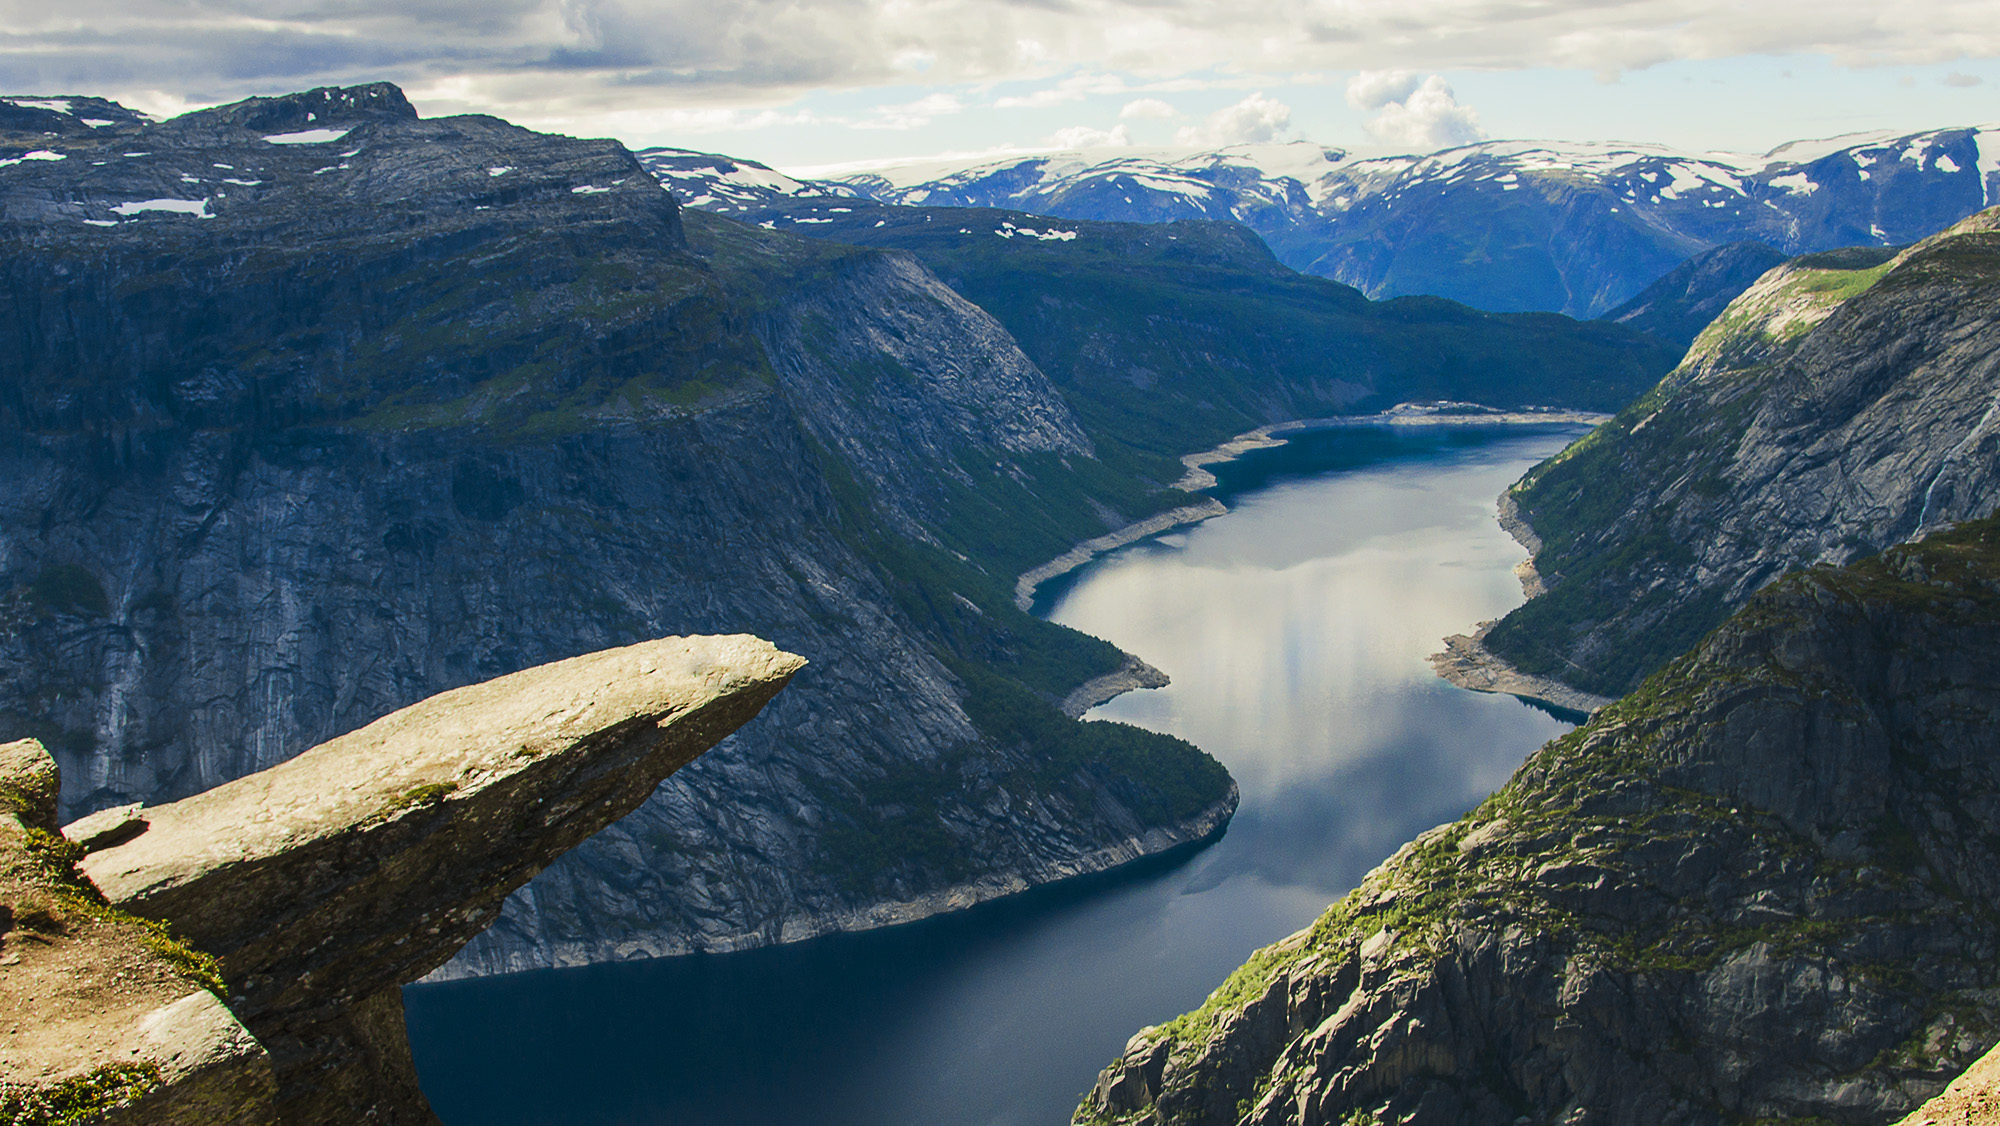 Car Parking Wallpaper Trolltunga 23 Km Hike To See Troll S Tongue Onedaystop Com